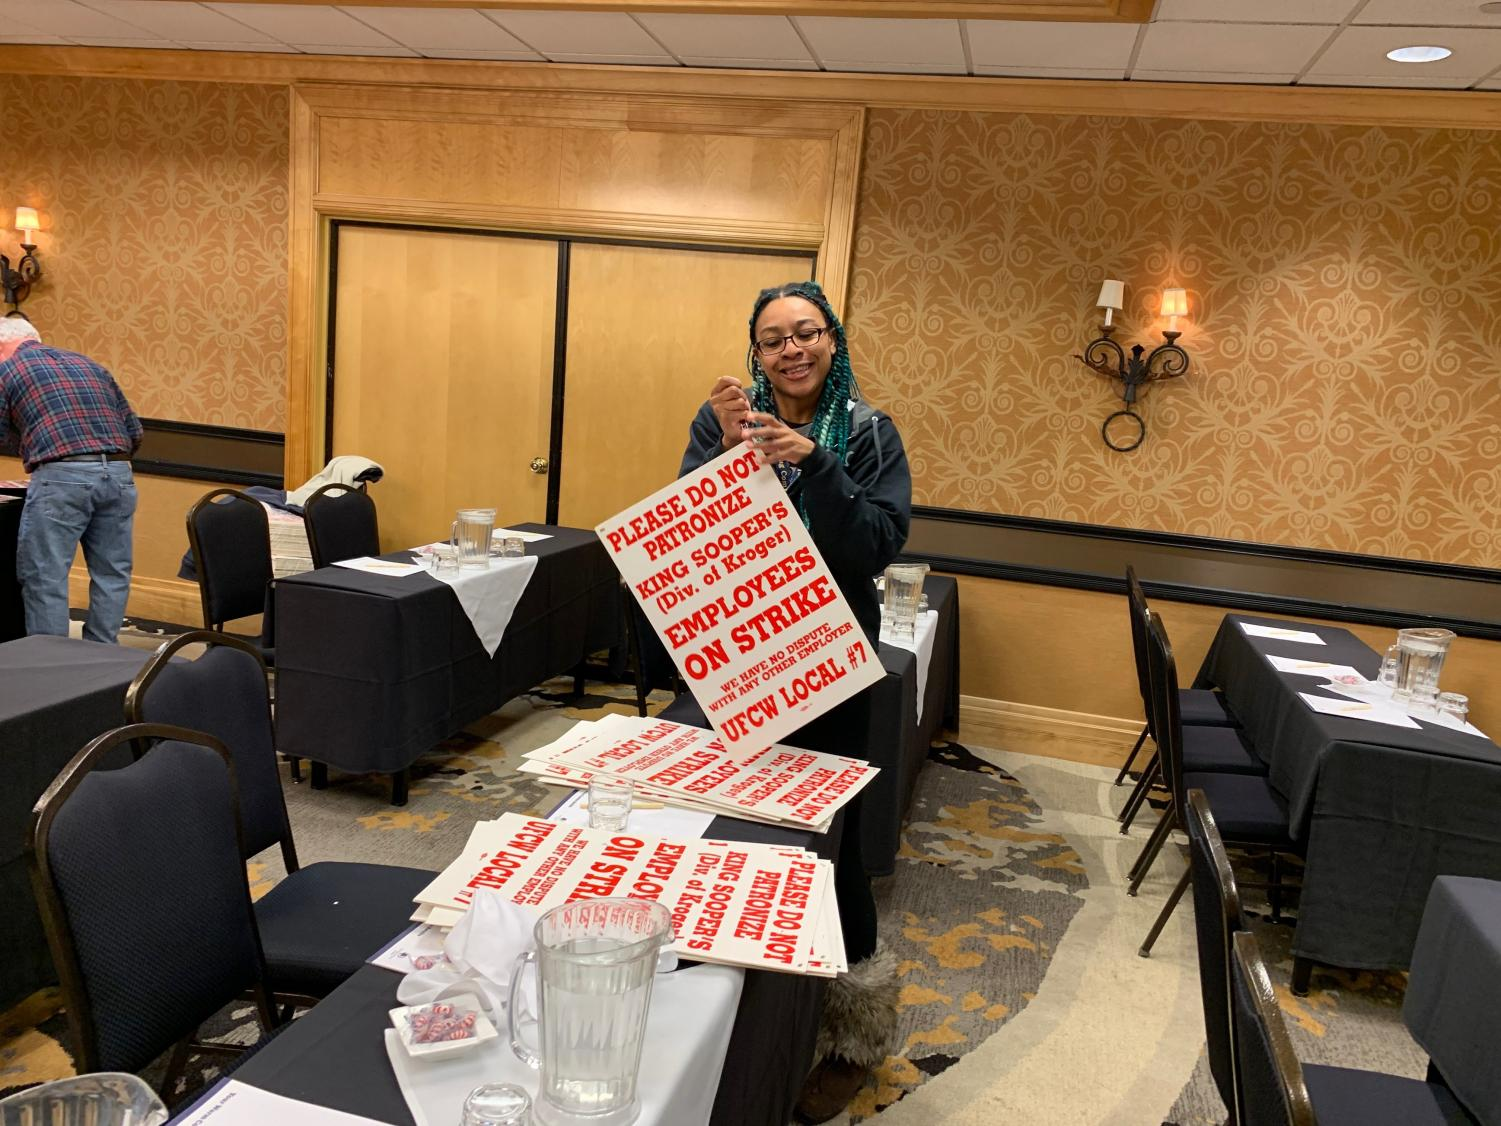 In preparation of a strike, union representatives prepare their picket signs.